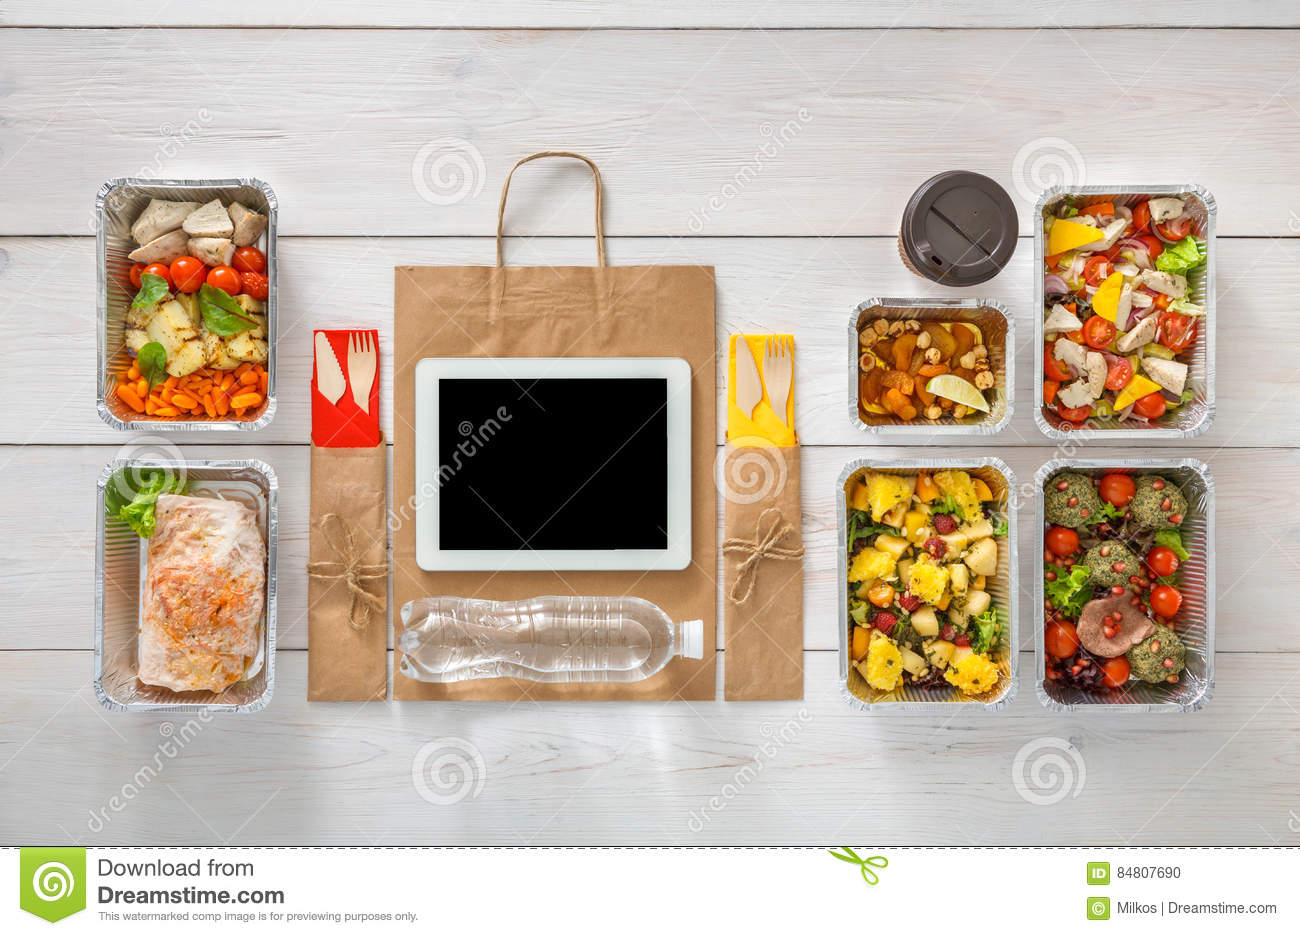 Can i buy healthy food online - Background Box Delivery Diet Foil Food Fresh Healthy Internet Meat Nutrition Online Order